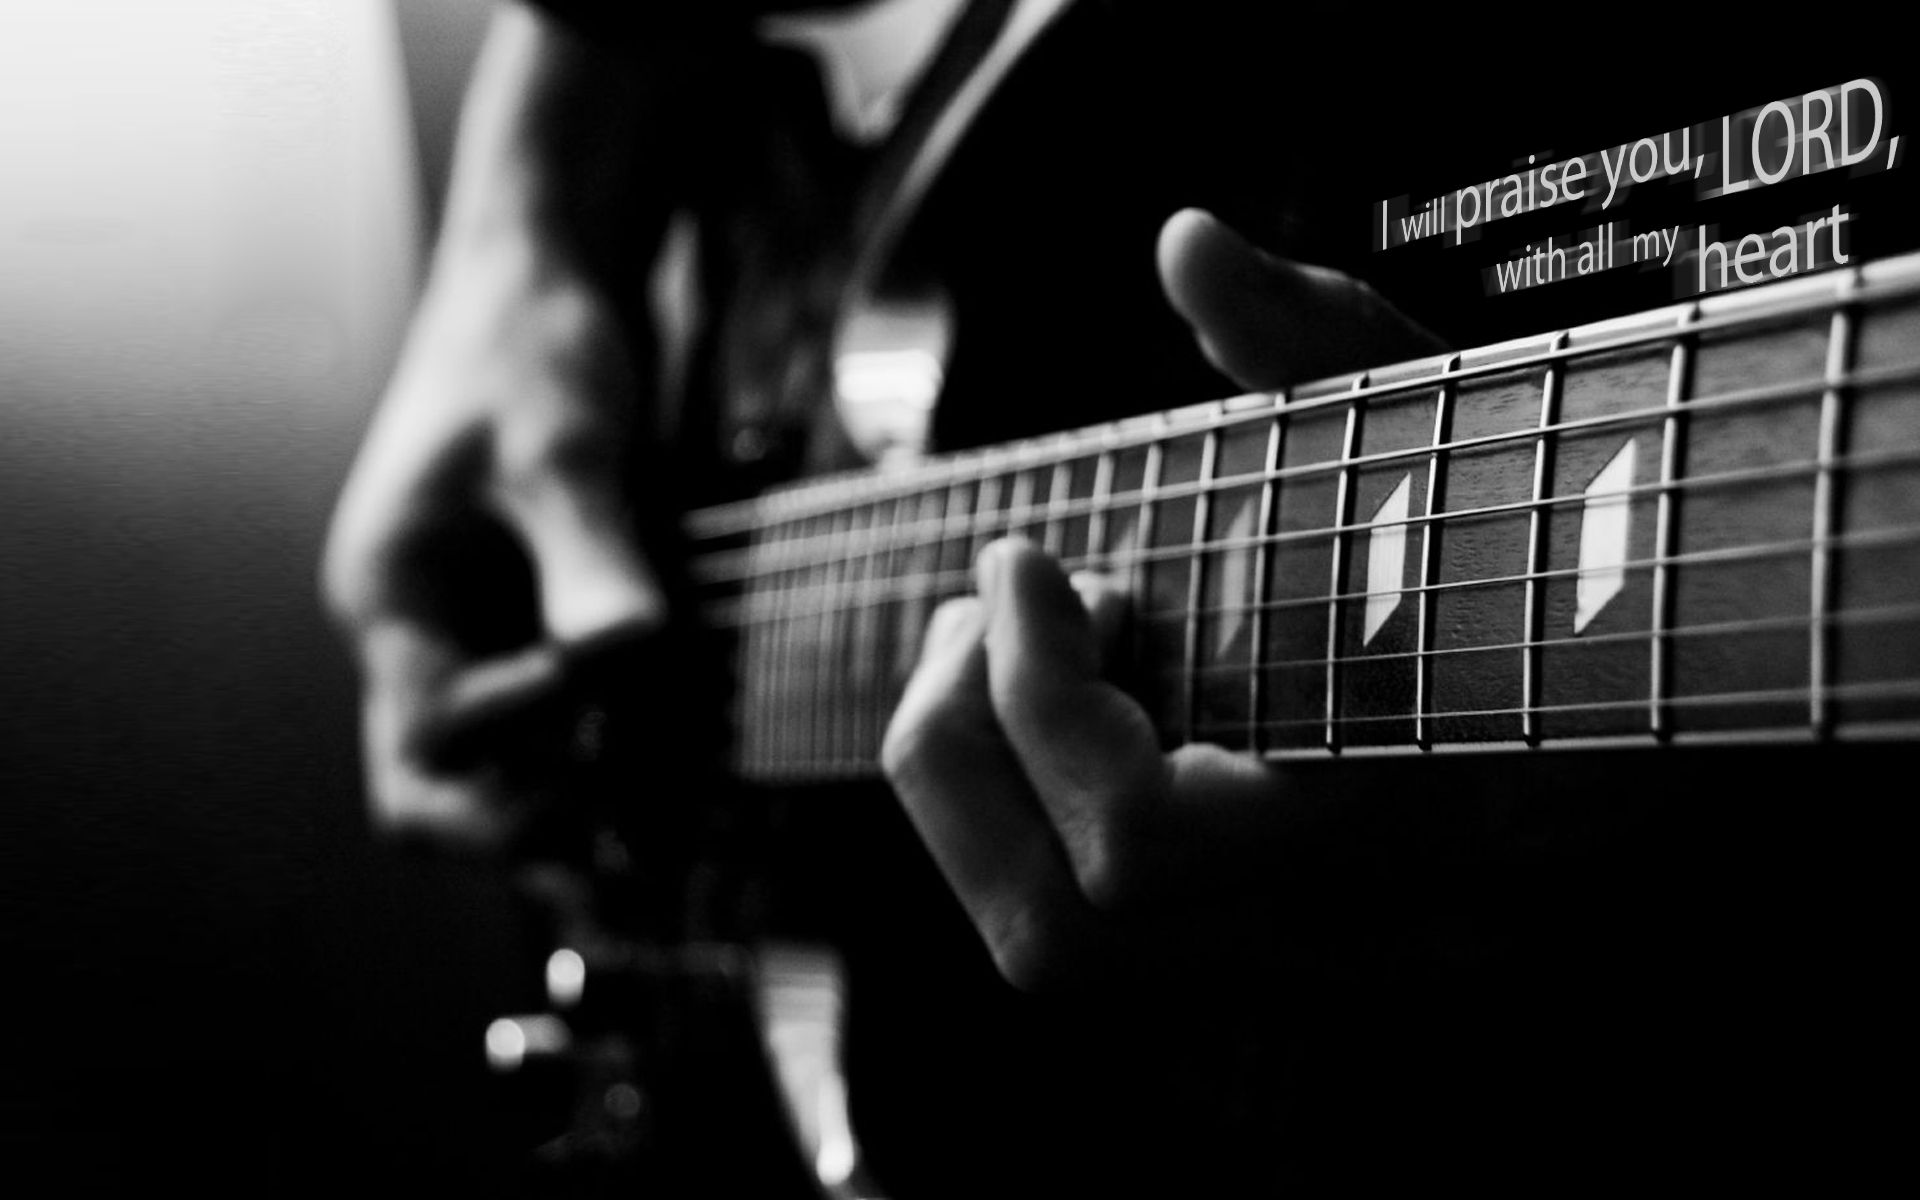 Hd wallpaper guitar - Worship Guitar Wallpaper Your Hd Wallpaper Id52155 Shared Via Slingpic Shared By